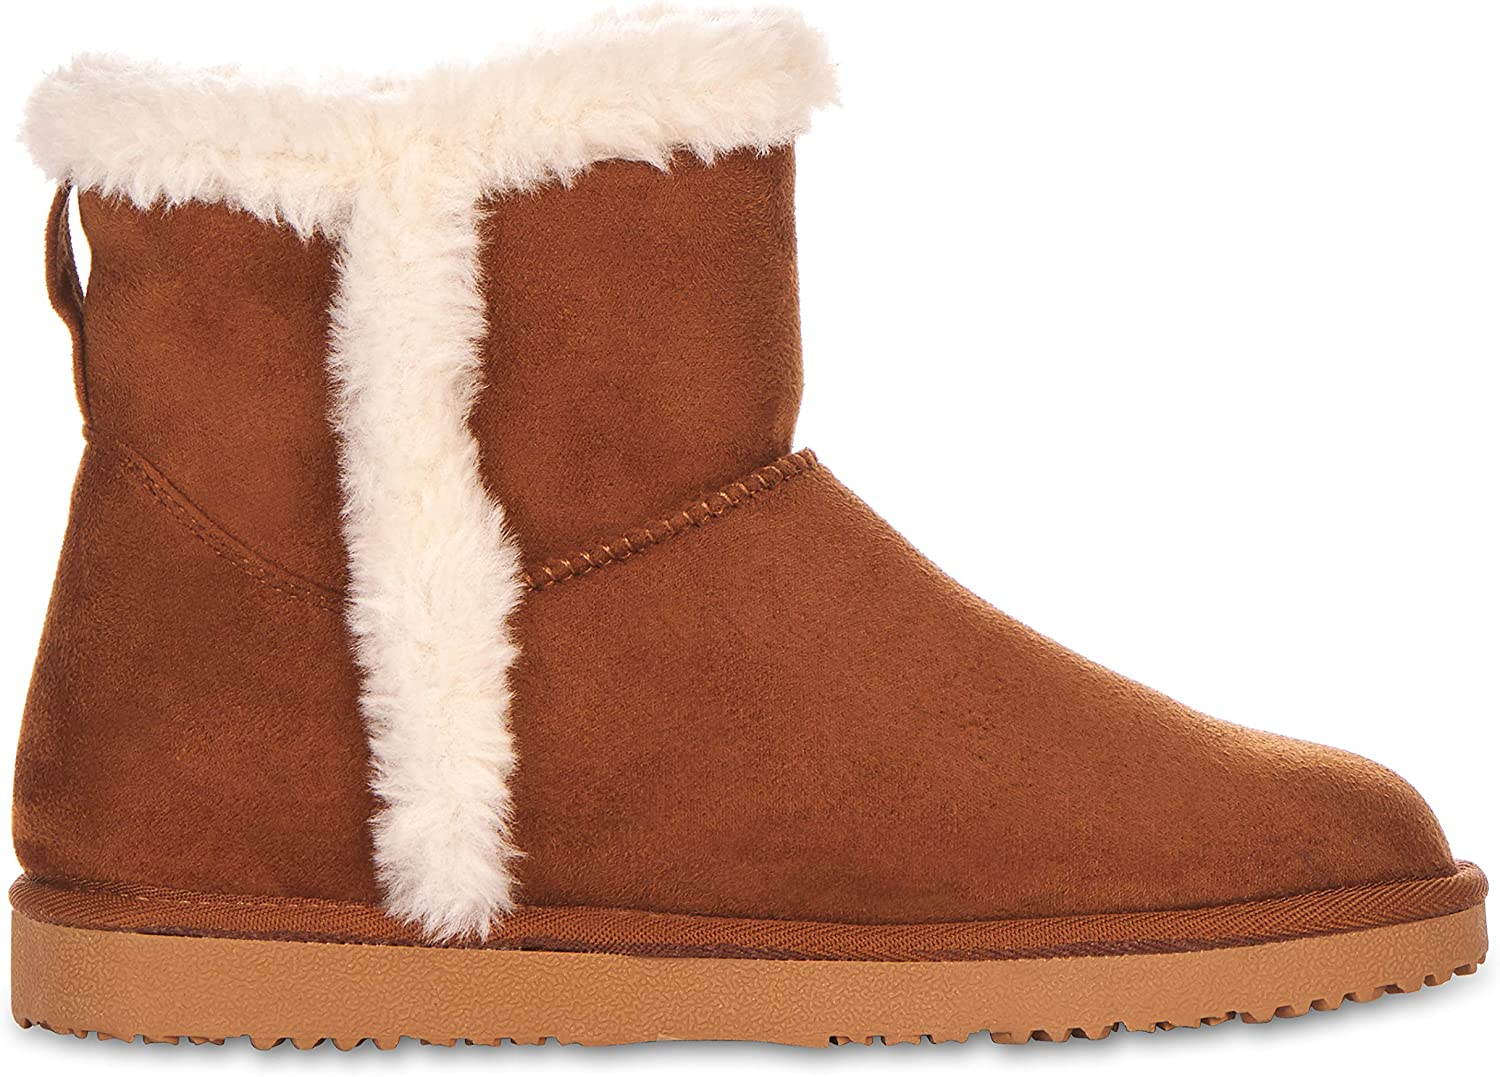 Faux Fur- Plush Interior- Anti-Skid Flat Sole Casual Everyday Wear Floopi Warm Winter Boots for Women- Classic Mid-Calf Cut Eco-Friendly Suede Exterior